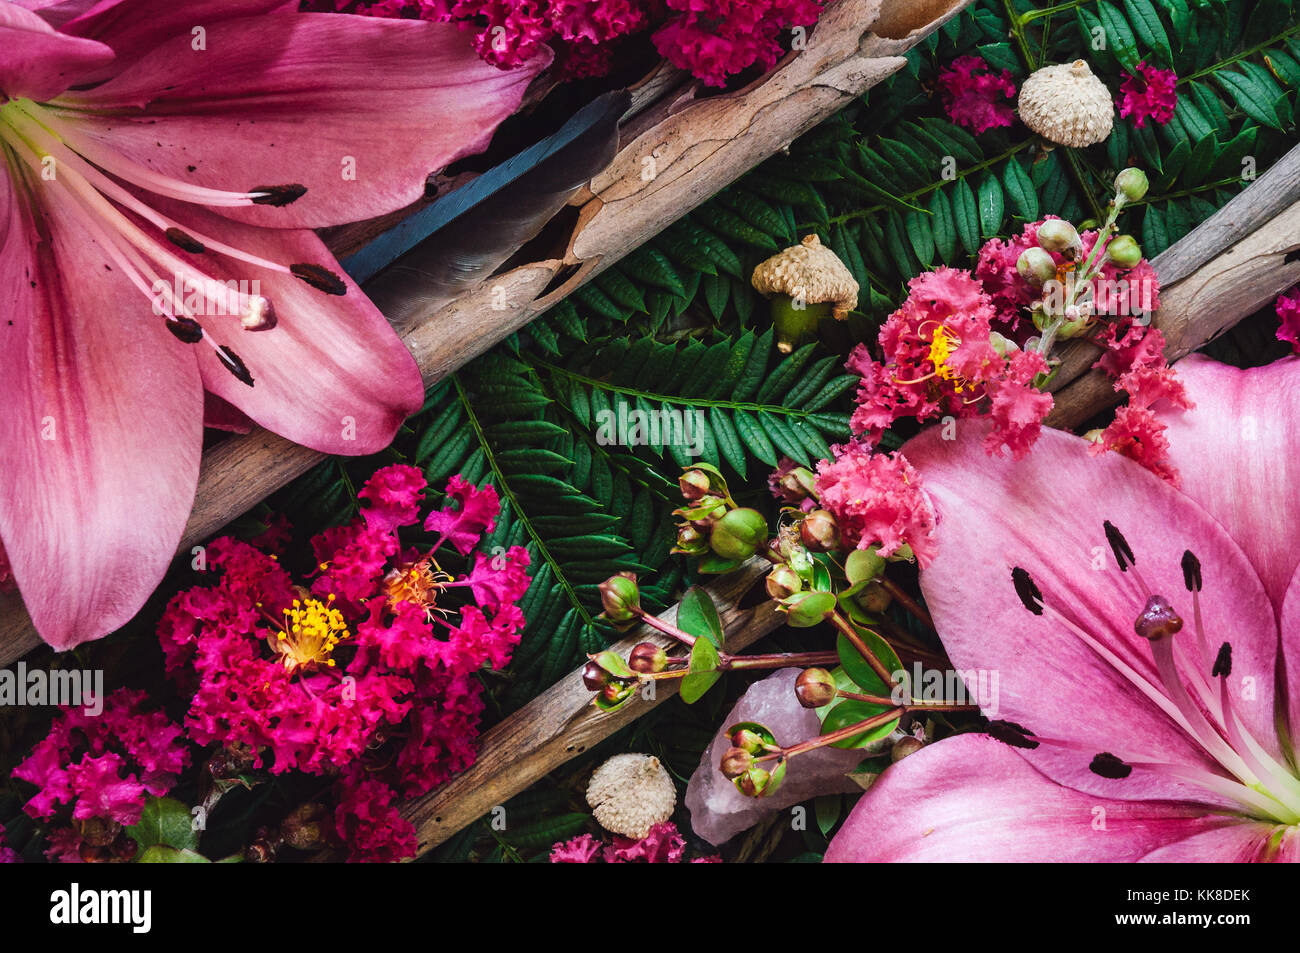 Lillies on a bed of Jacaranda with Acorns Stock Photo